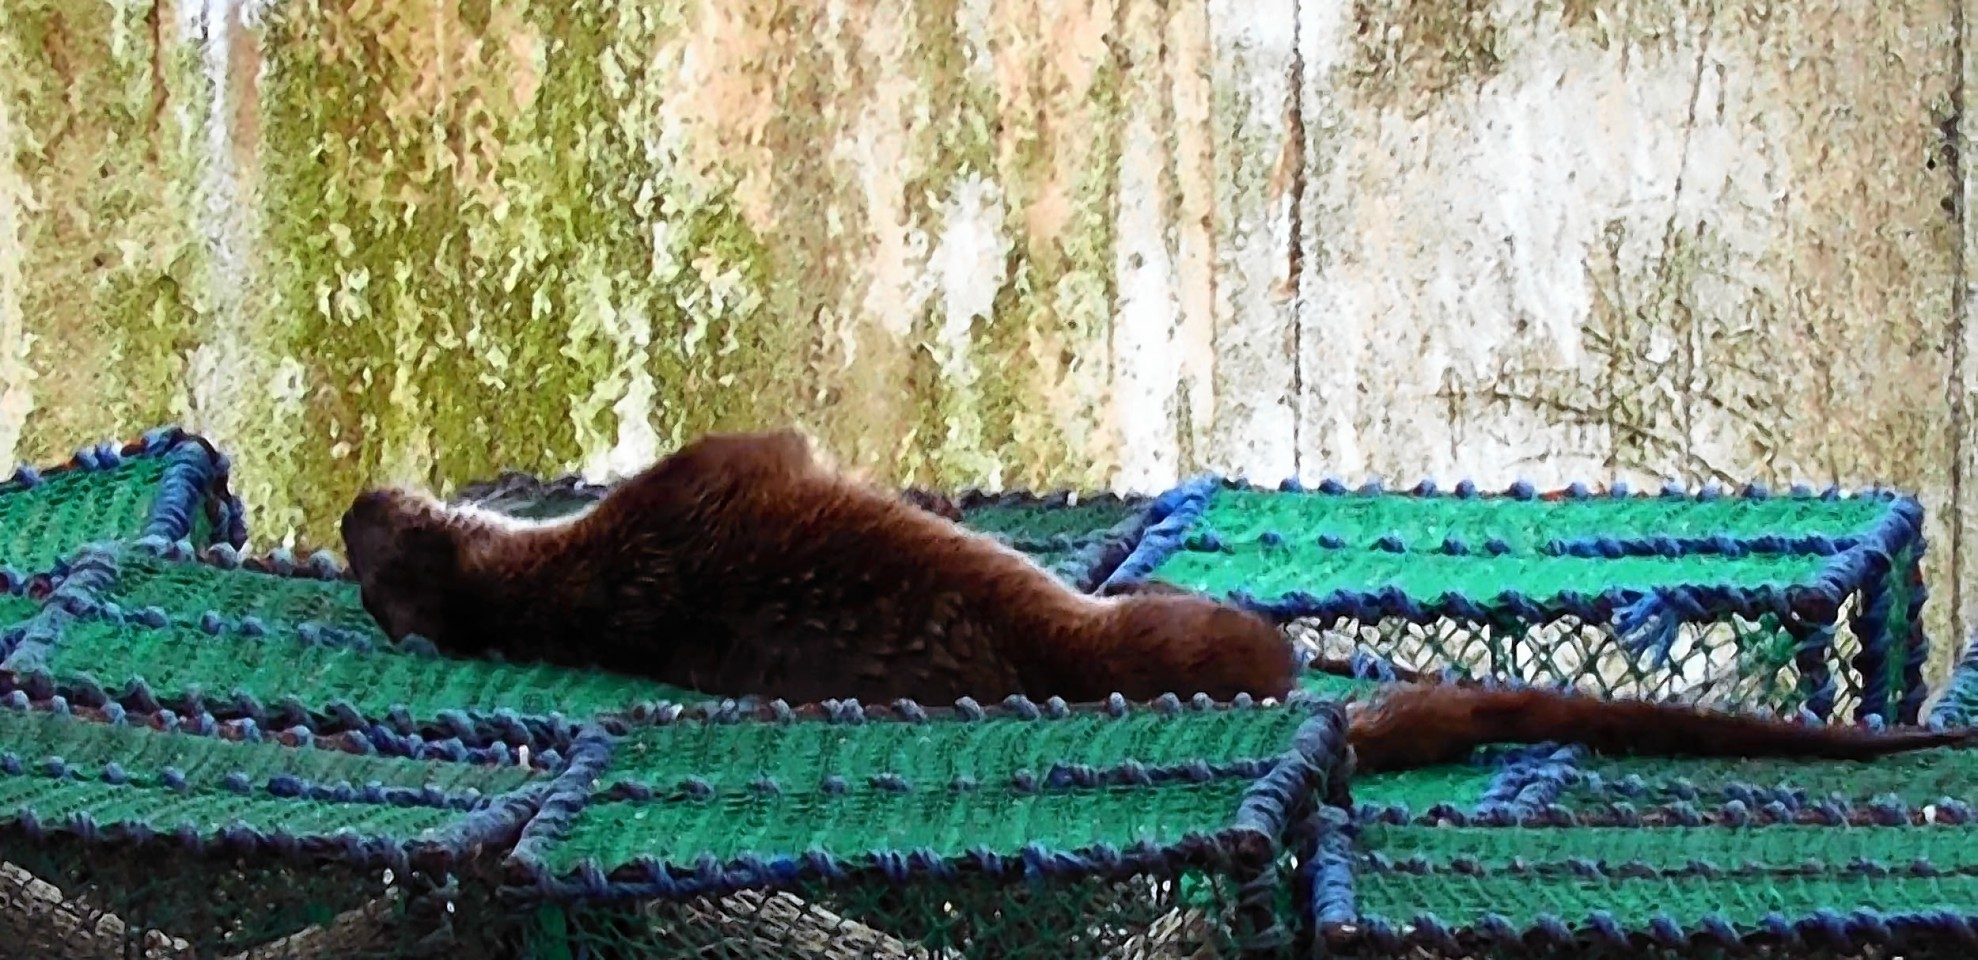 This otter found an innovative use for lobster pots